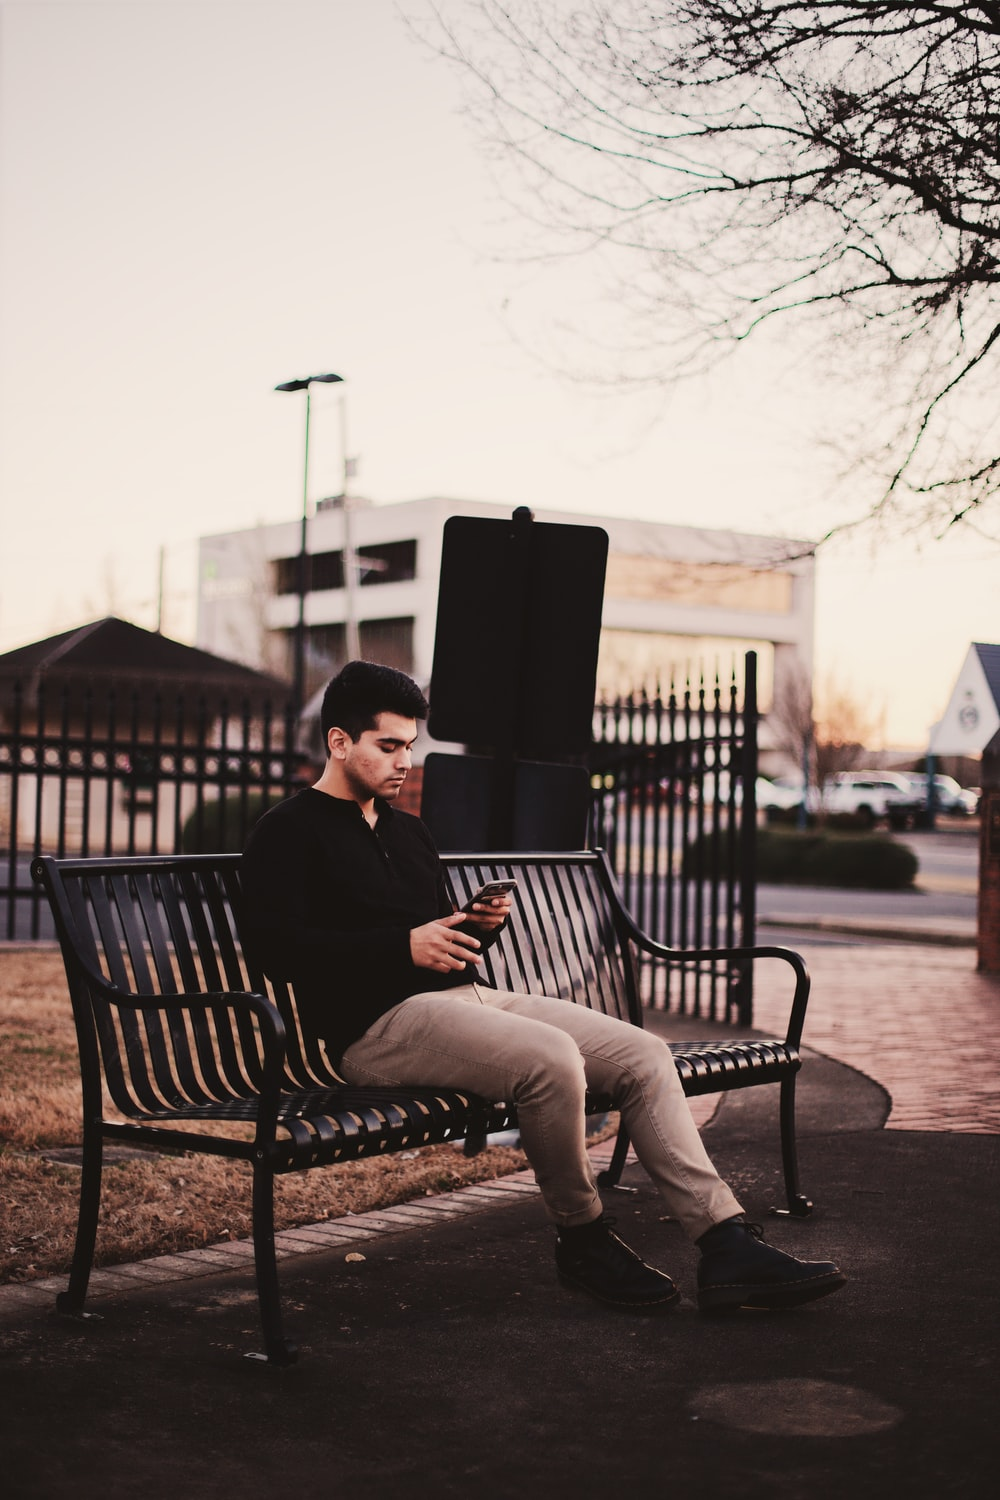 man sitting on black bench under withered tree